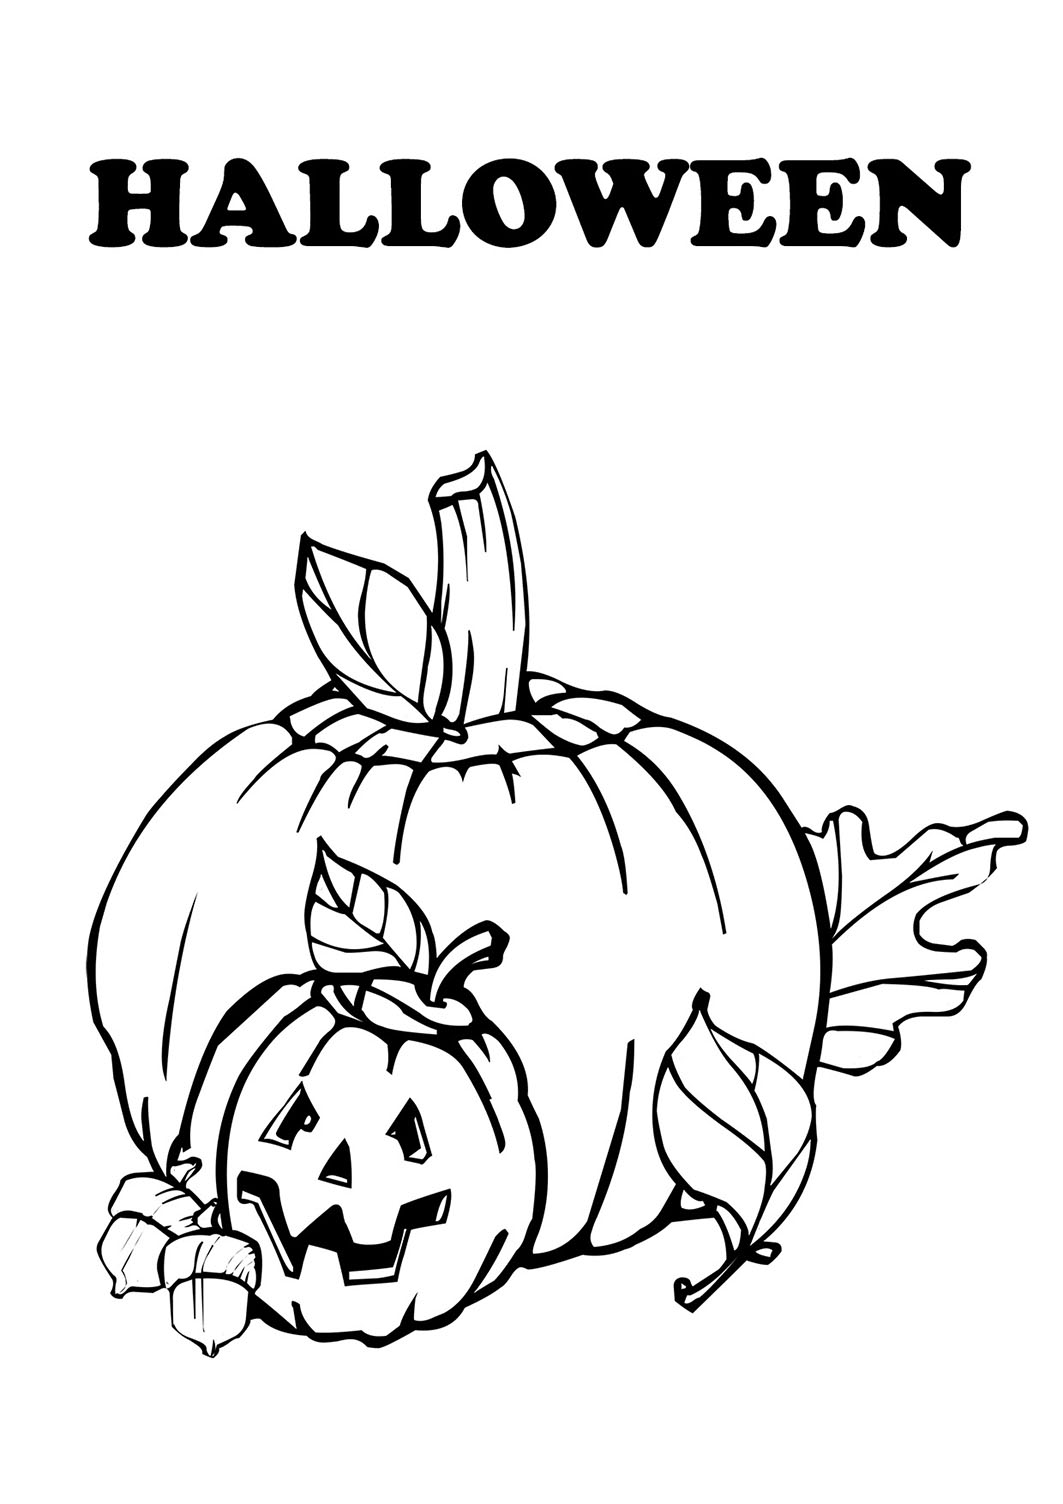 Halloween Clip Art Coloring Pages